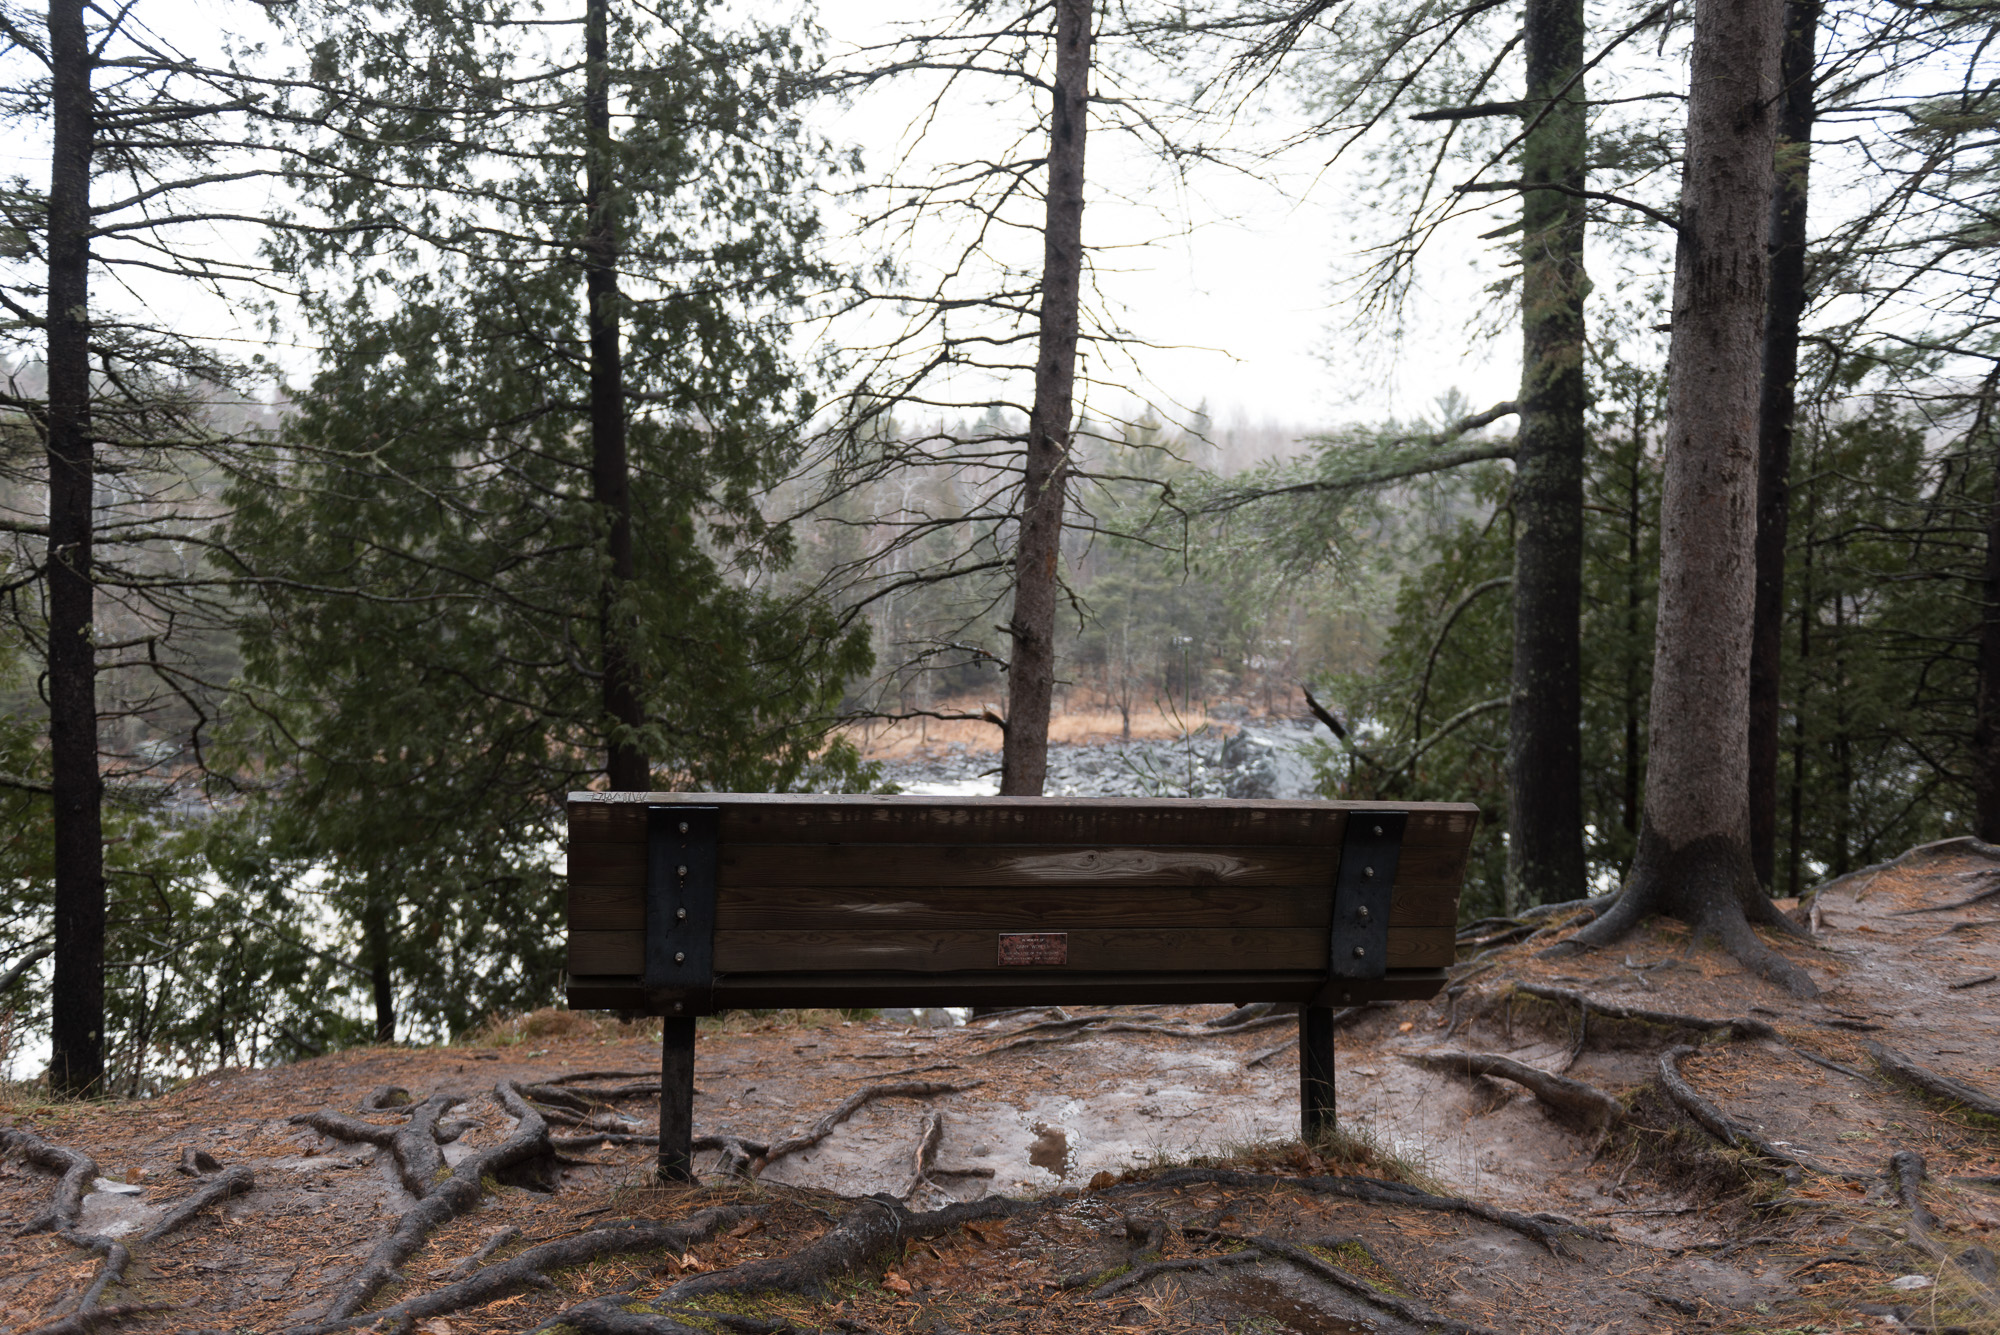 A photo from behind of a park bench overlooking a snowy river.